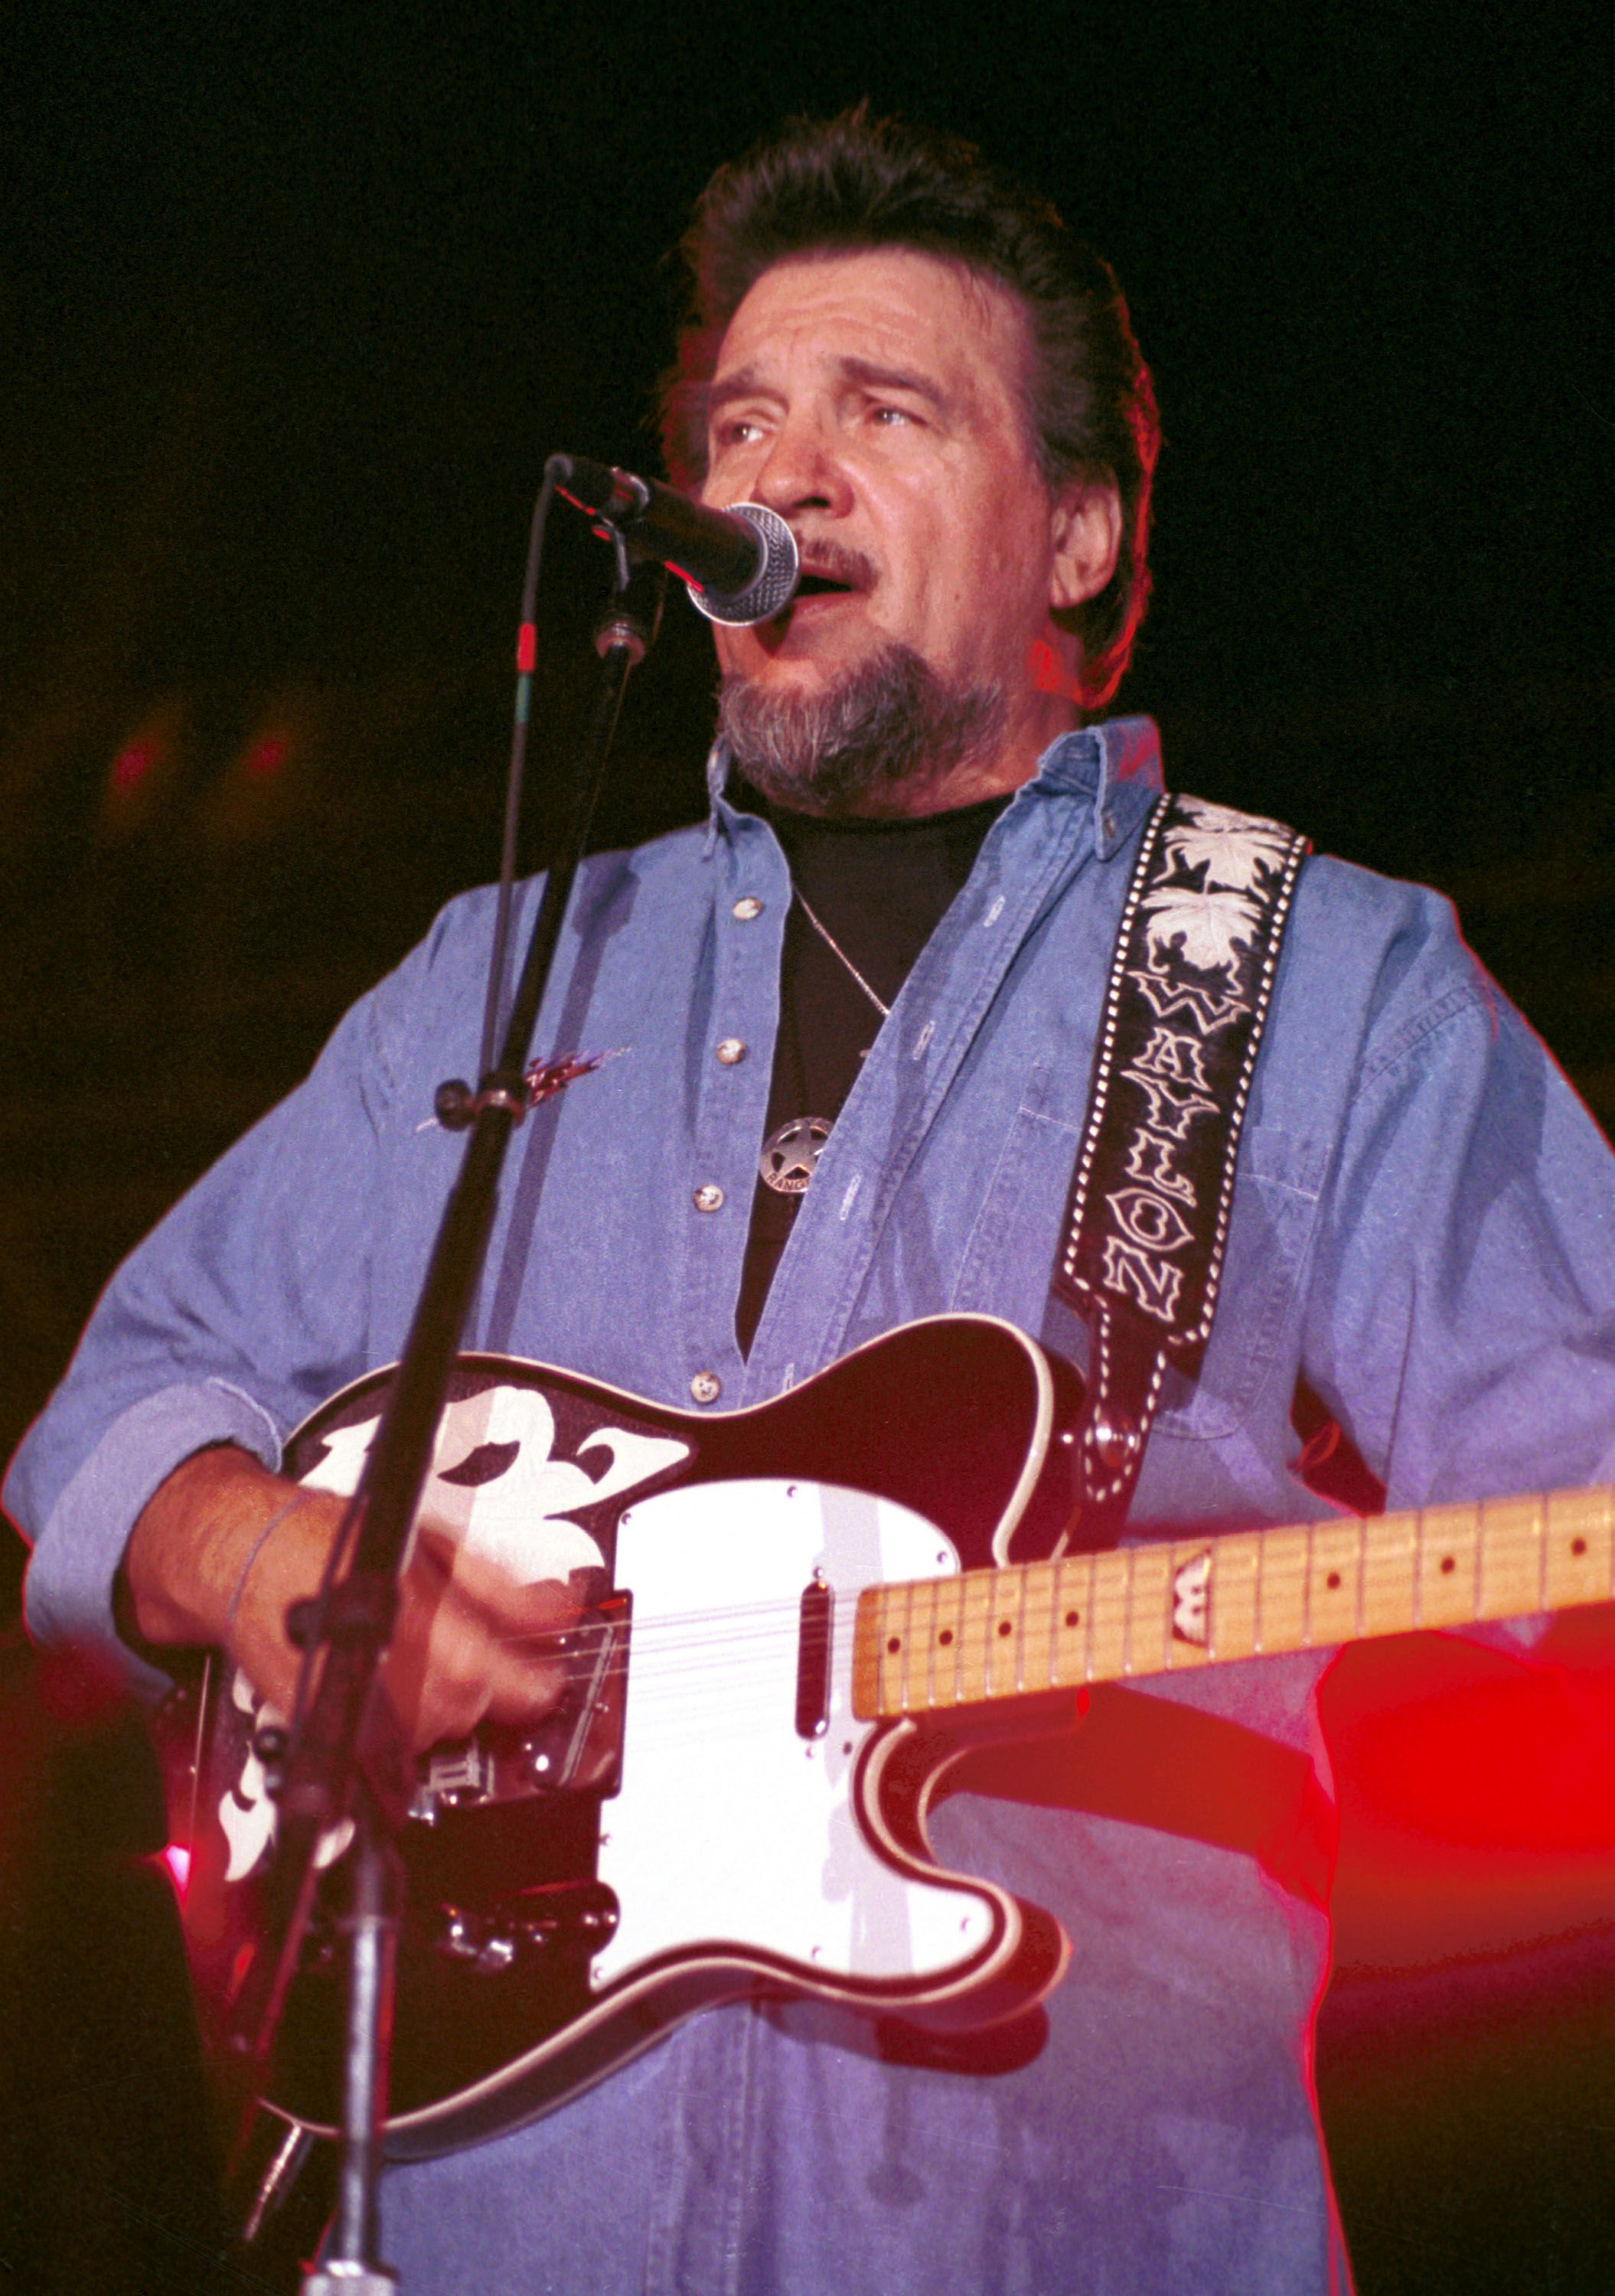 Waylon Jennings performs at The Rio on June 3, 1995, in Las Vegas, Nevada |  Photo: Scott Harrison/Getty Images